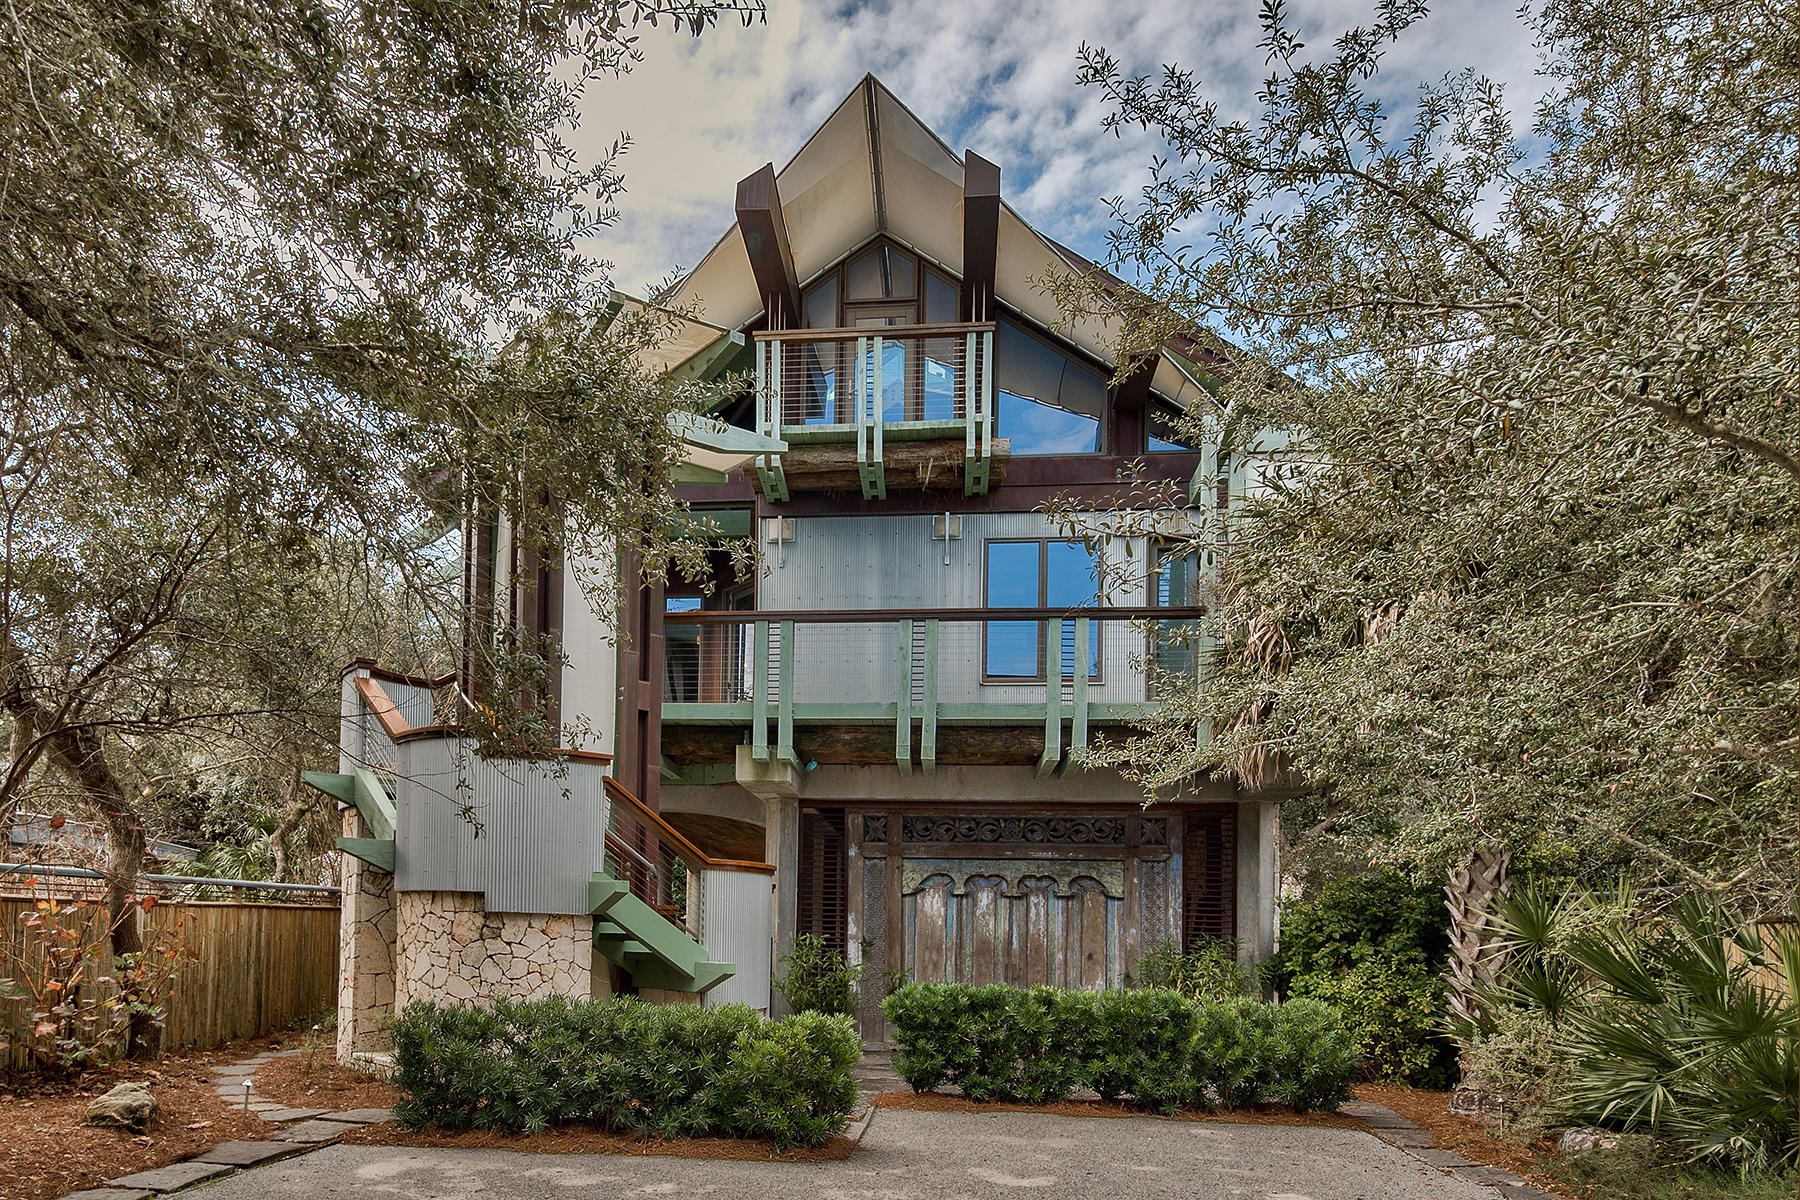 Moradia para Venda às ONE OF A KIND ARCHITECTURAL MASTERPIECE 52 Banfill Street Santa Rosa Beach, Florida, 32459 Estados Unidos